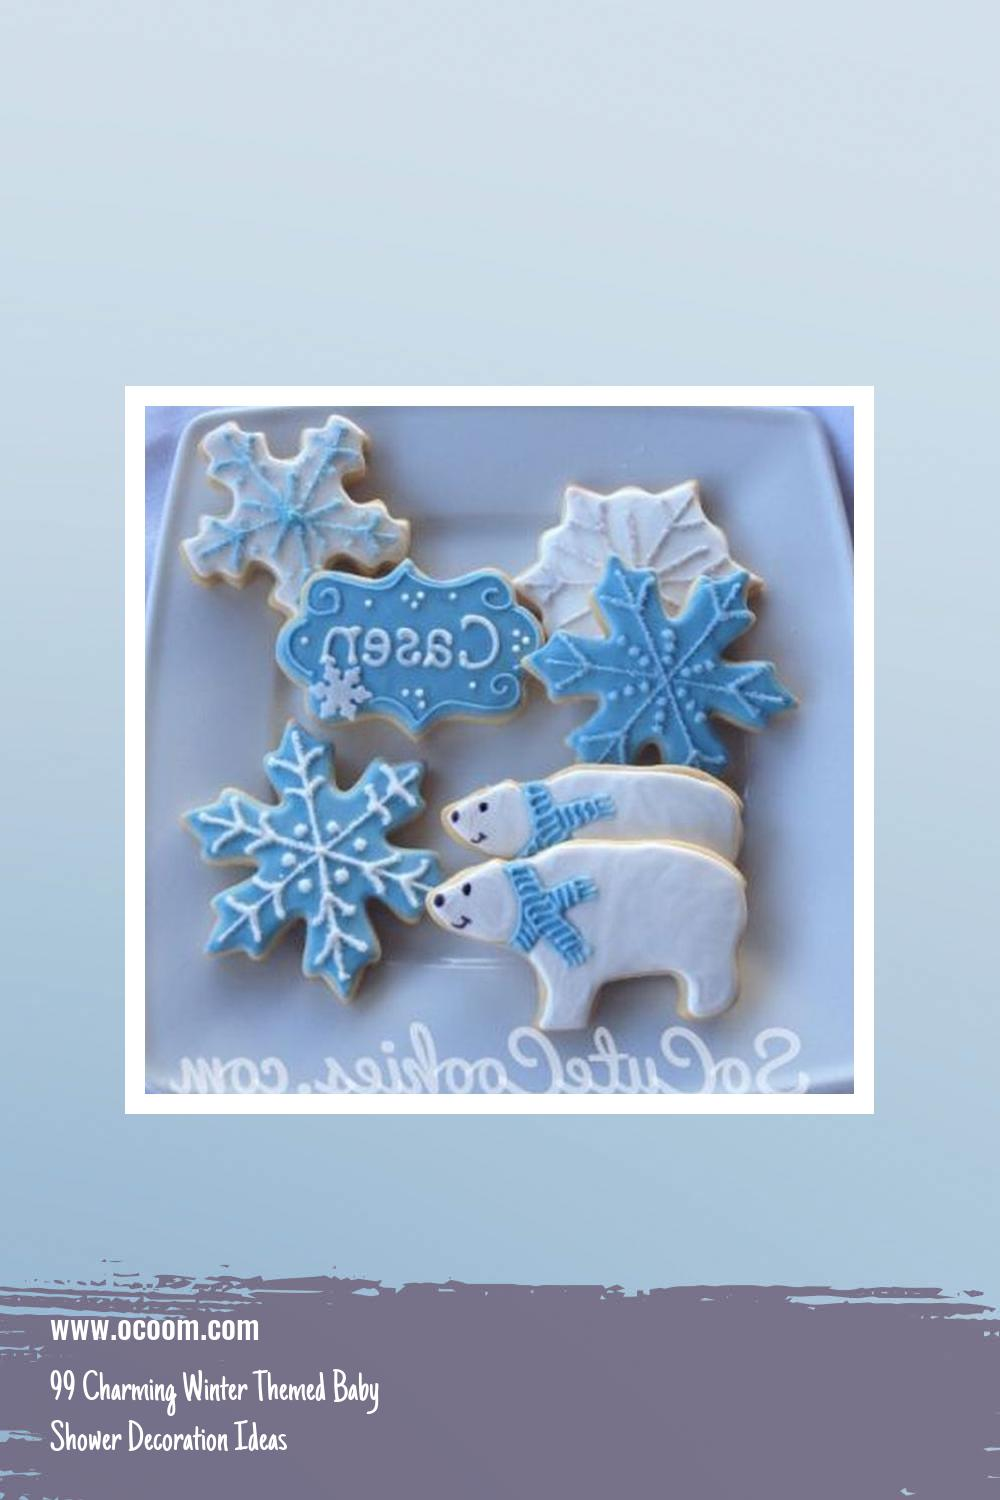 99 Charming Winter Themed Baby Shower Decoration Ideas 22